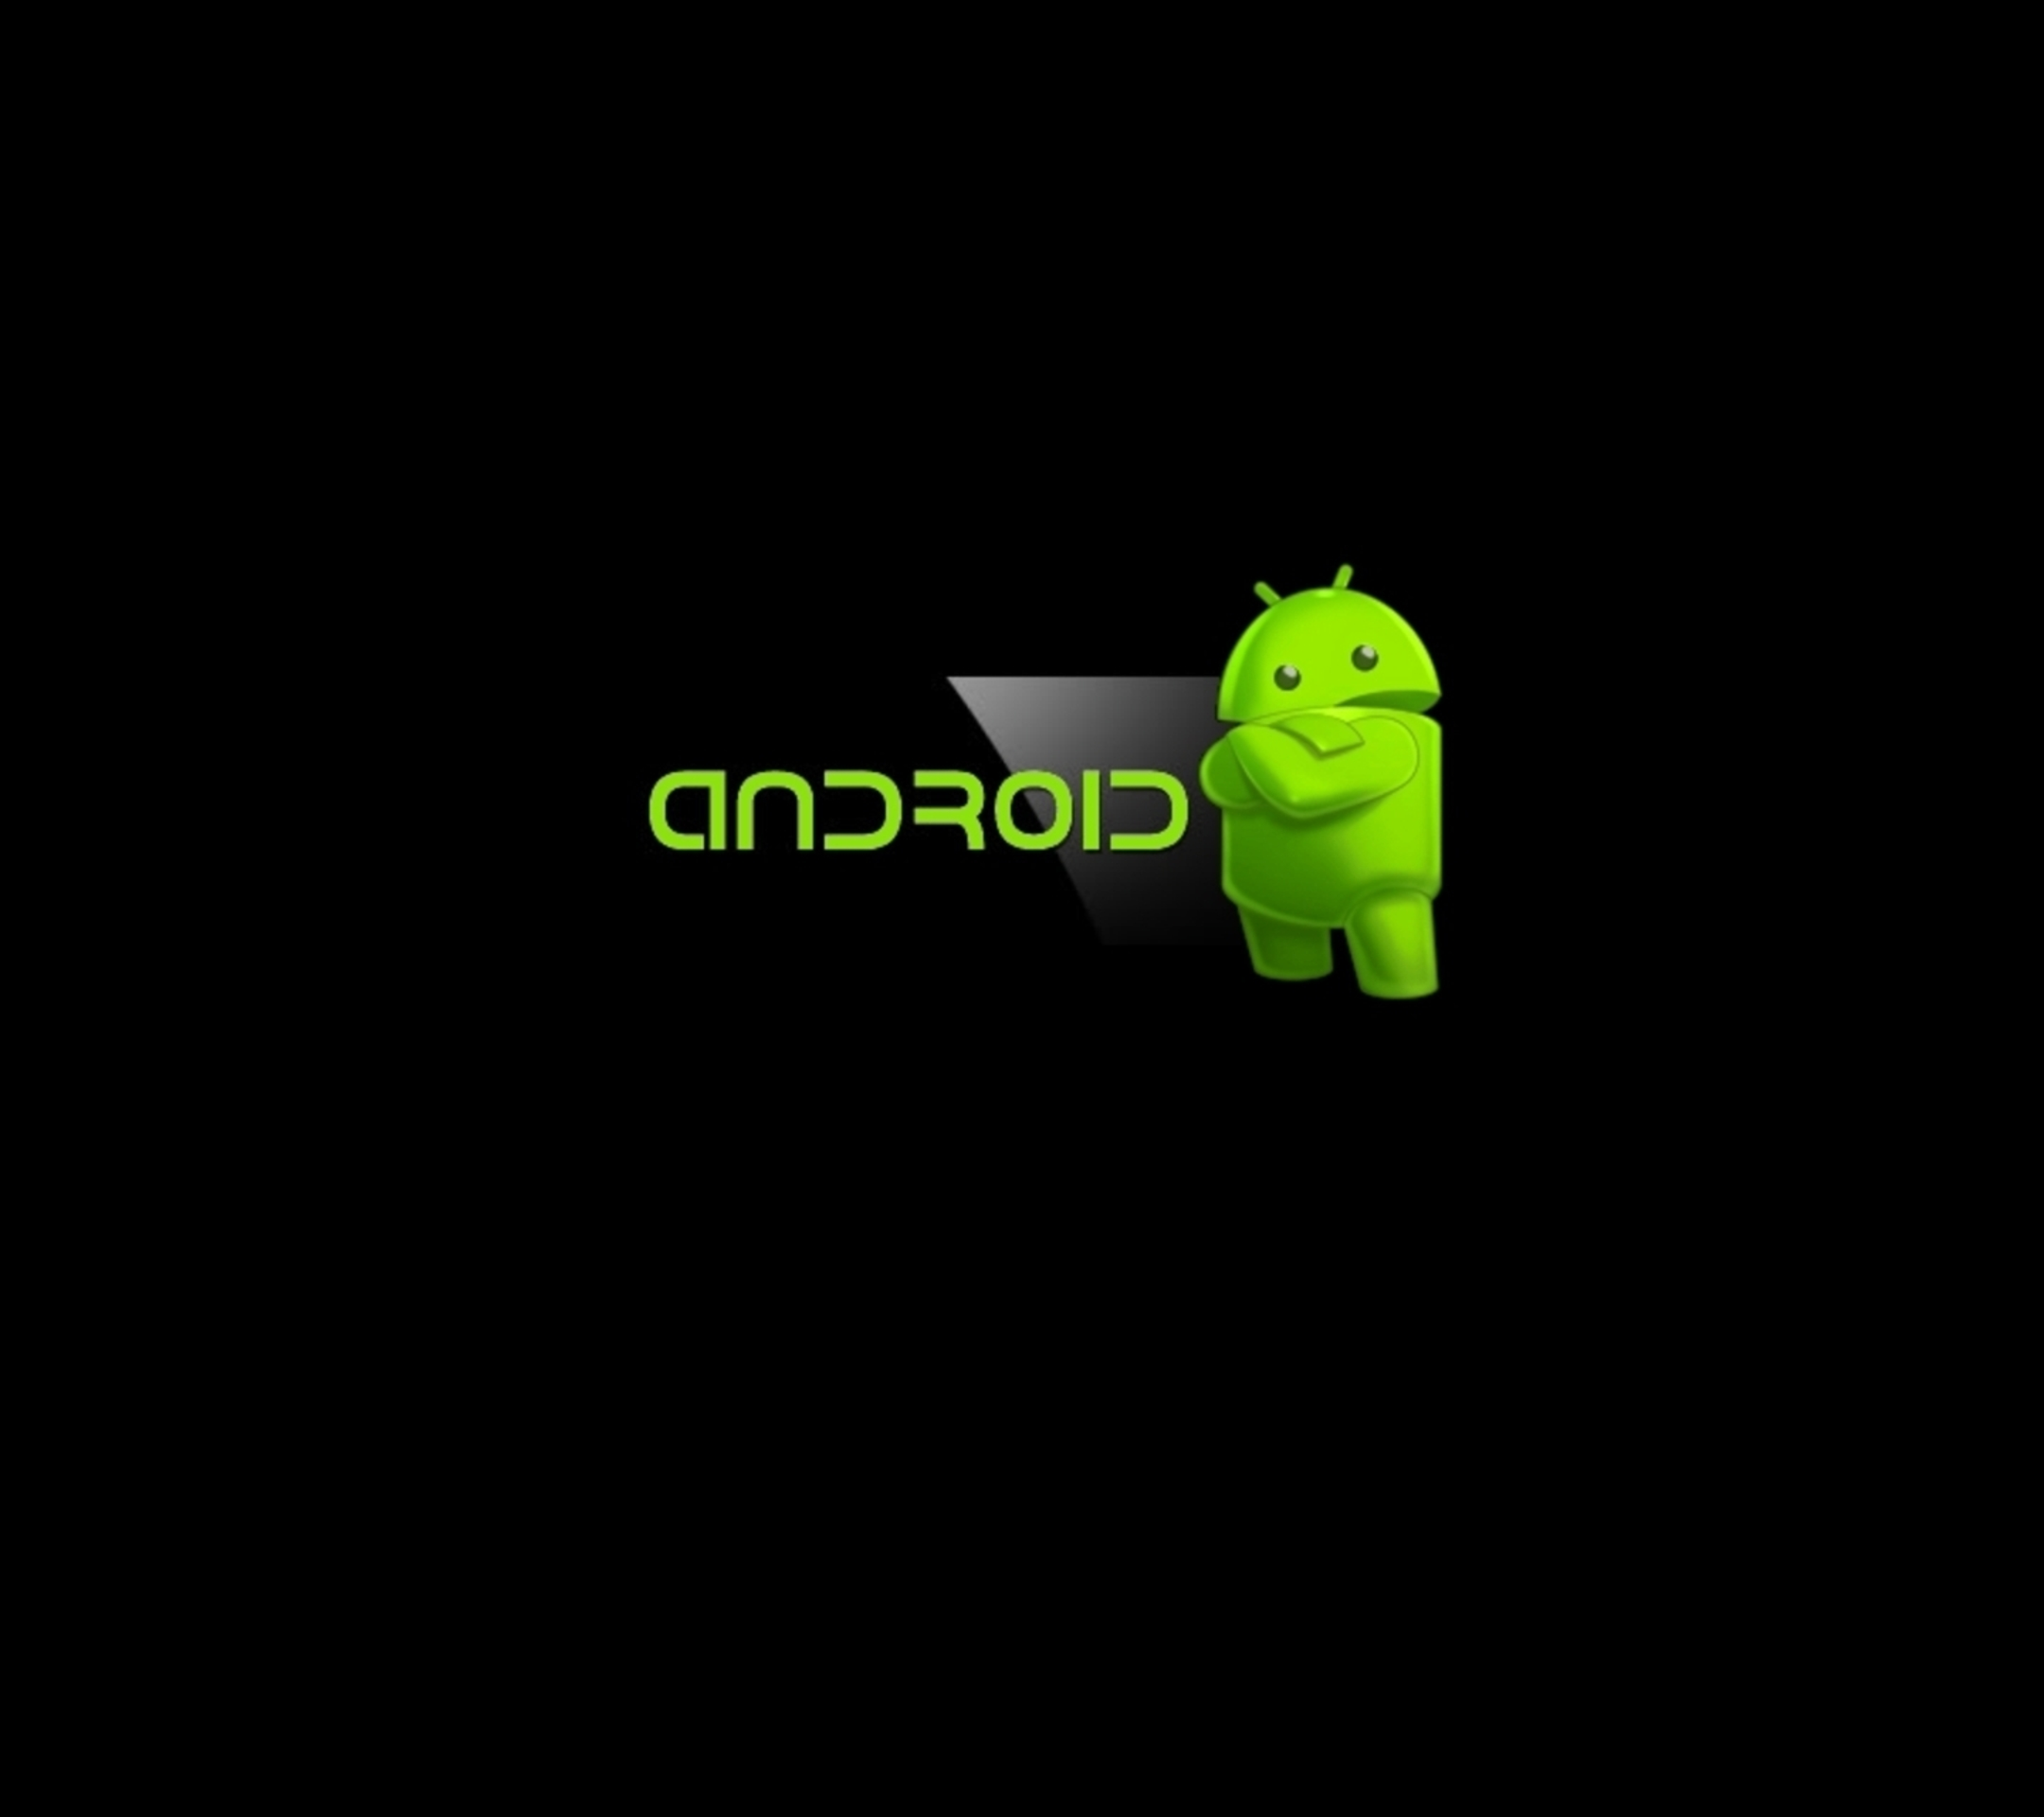 android my galaxy s4 wallpaper hd android